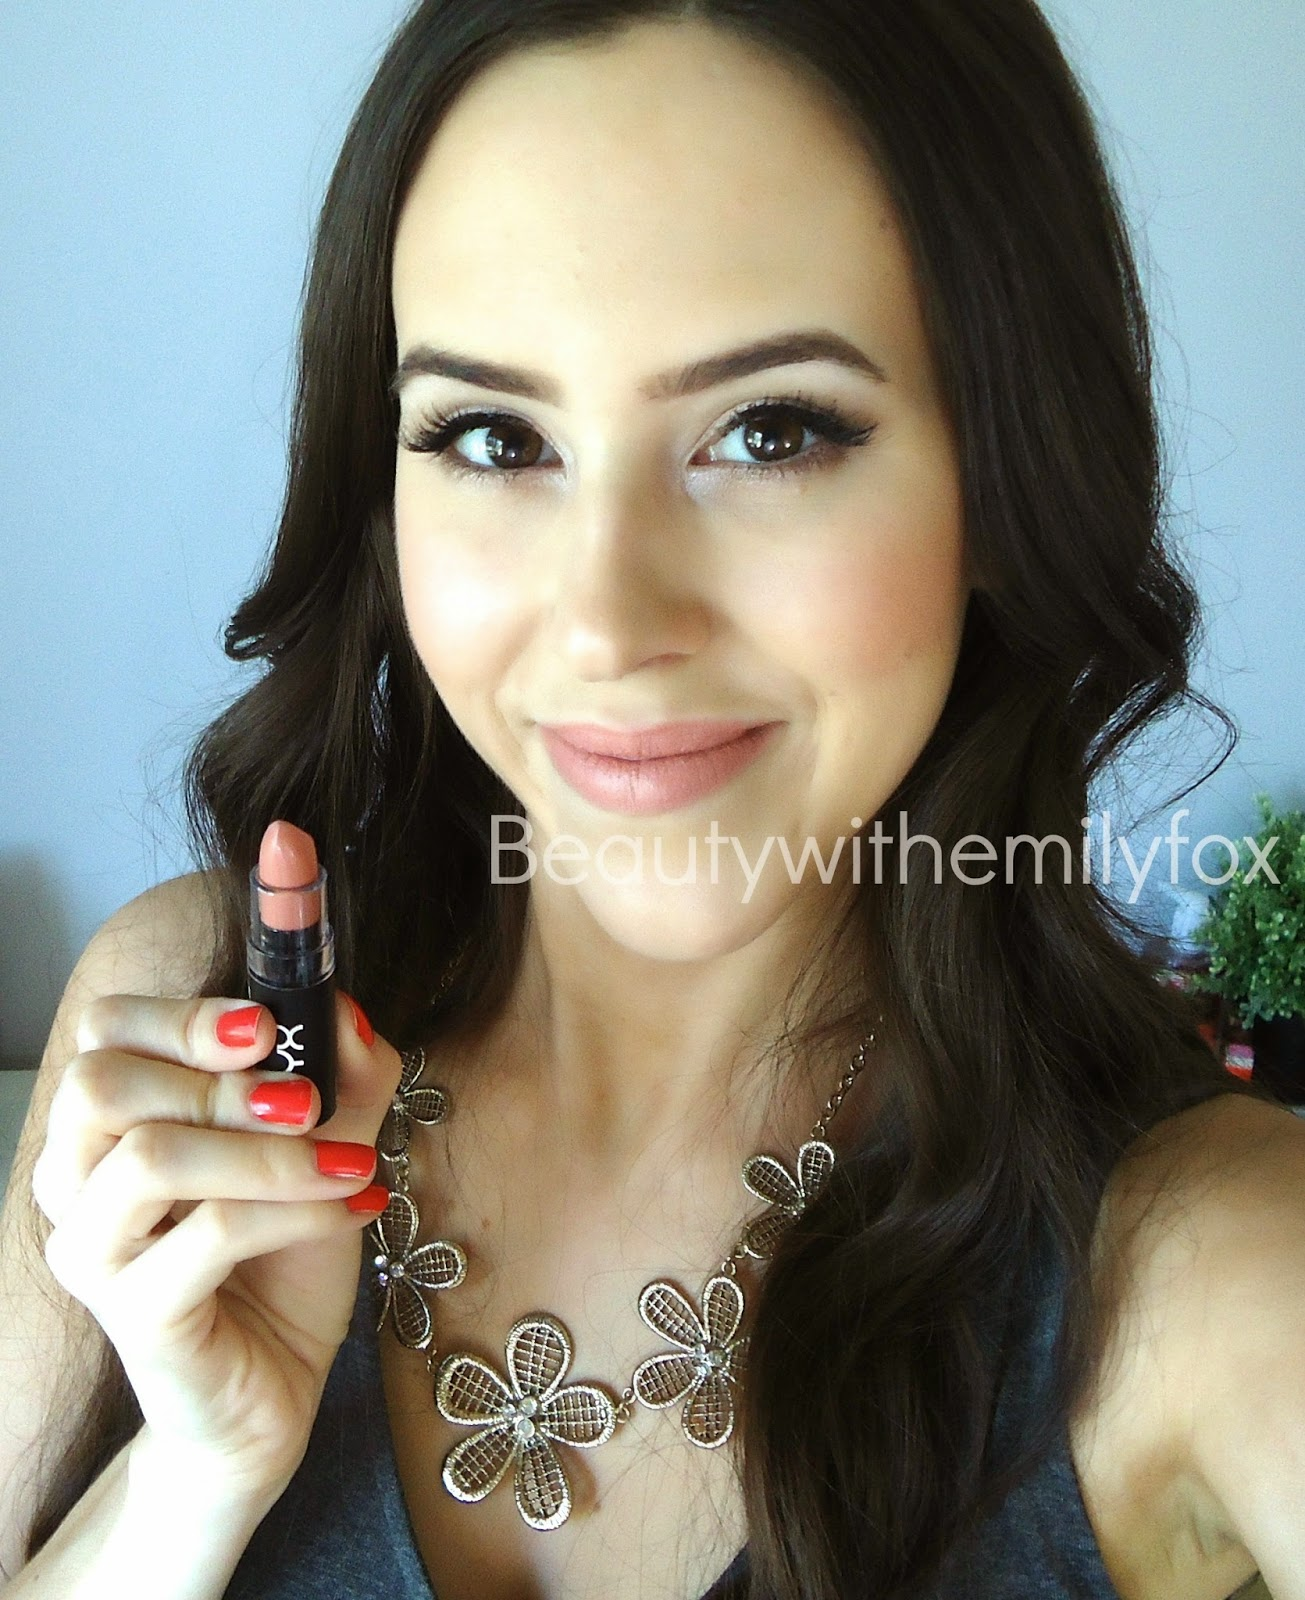 beautywithemilyfox nyx matte lipsticks new shades 2014